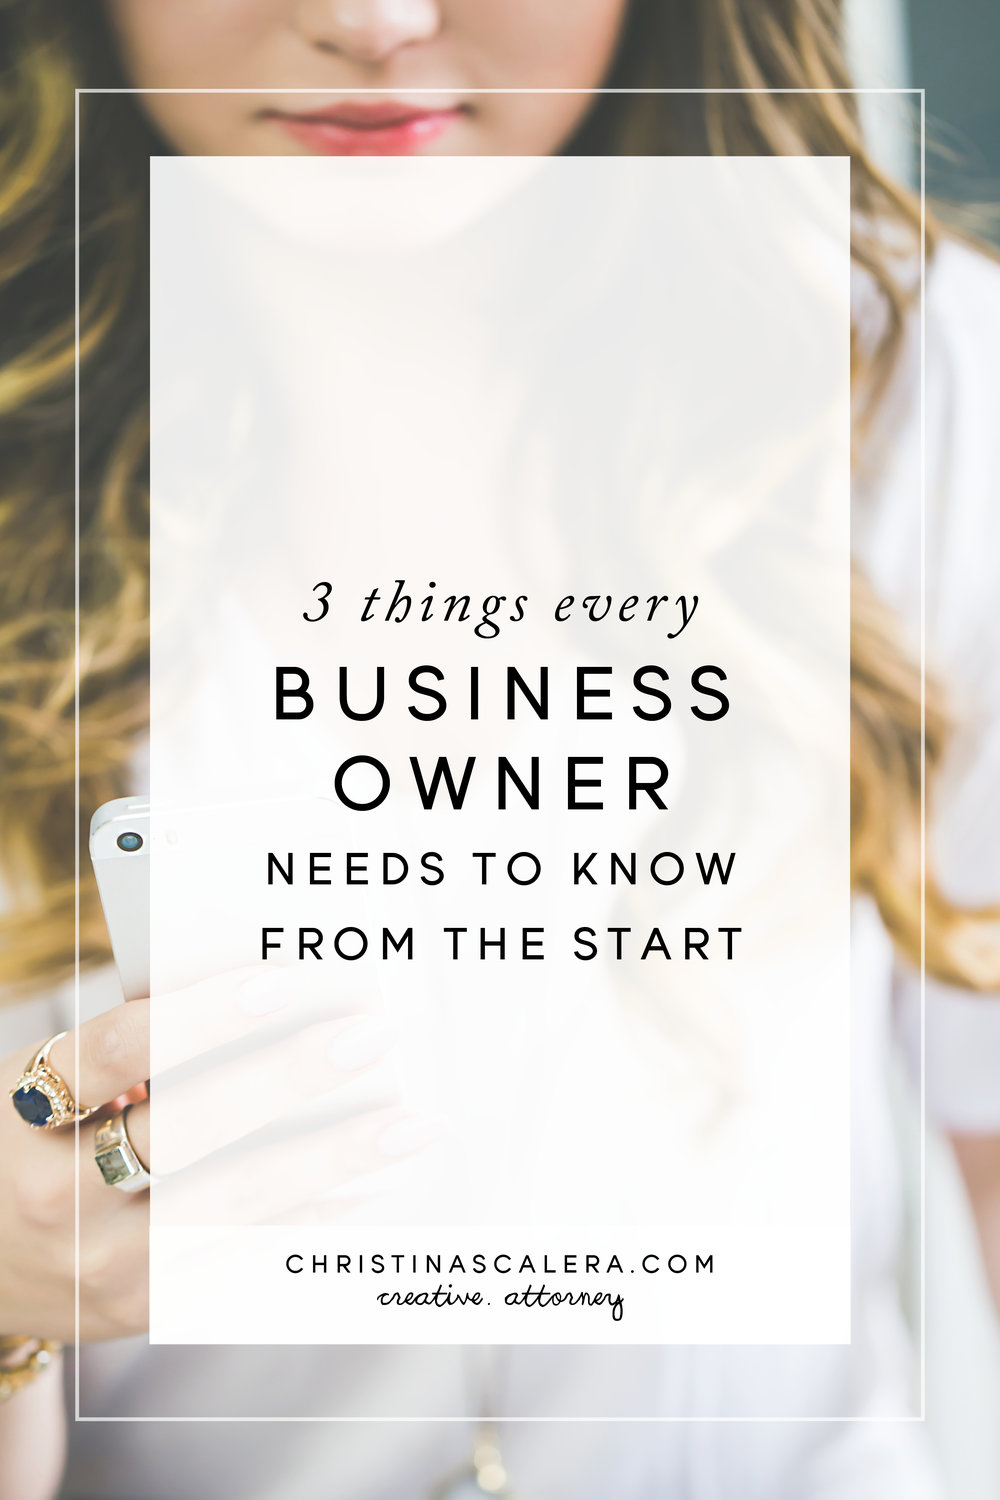 Here are 3 things every business owner needs to know from the start.